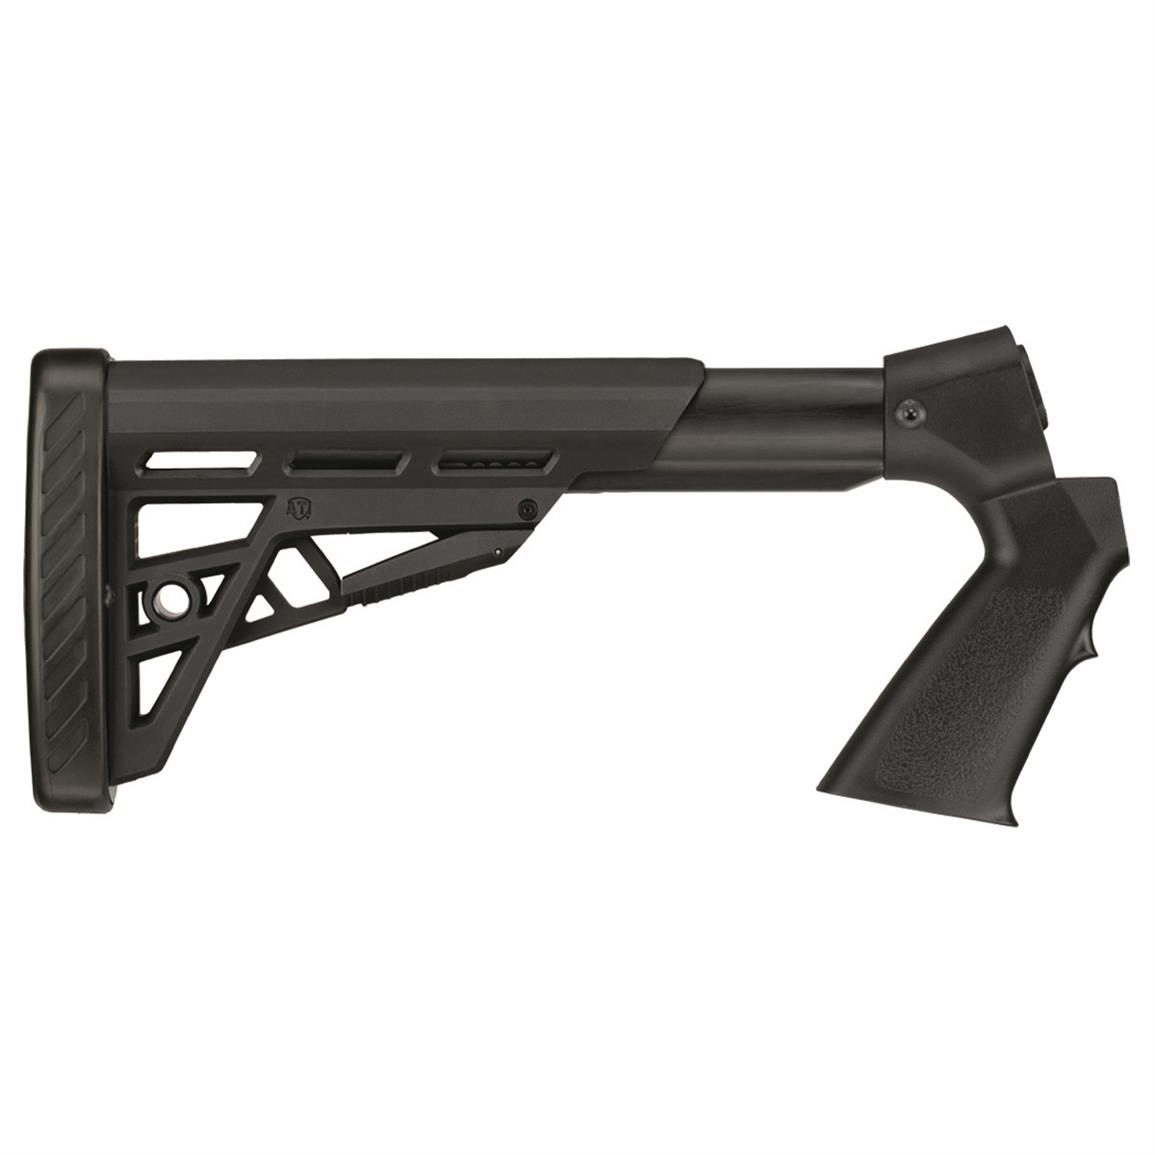 ATI TactLite ShotForce Shotgun Stock, for Mossberg / Remington / Winchester 12 Gauge